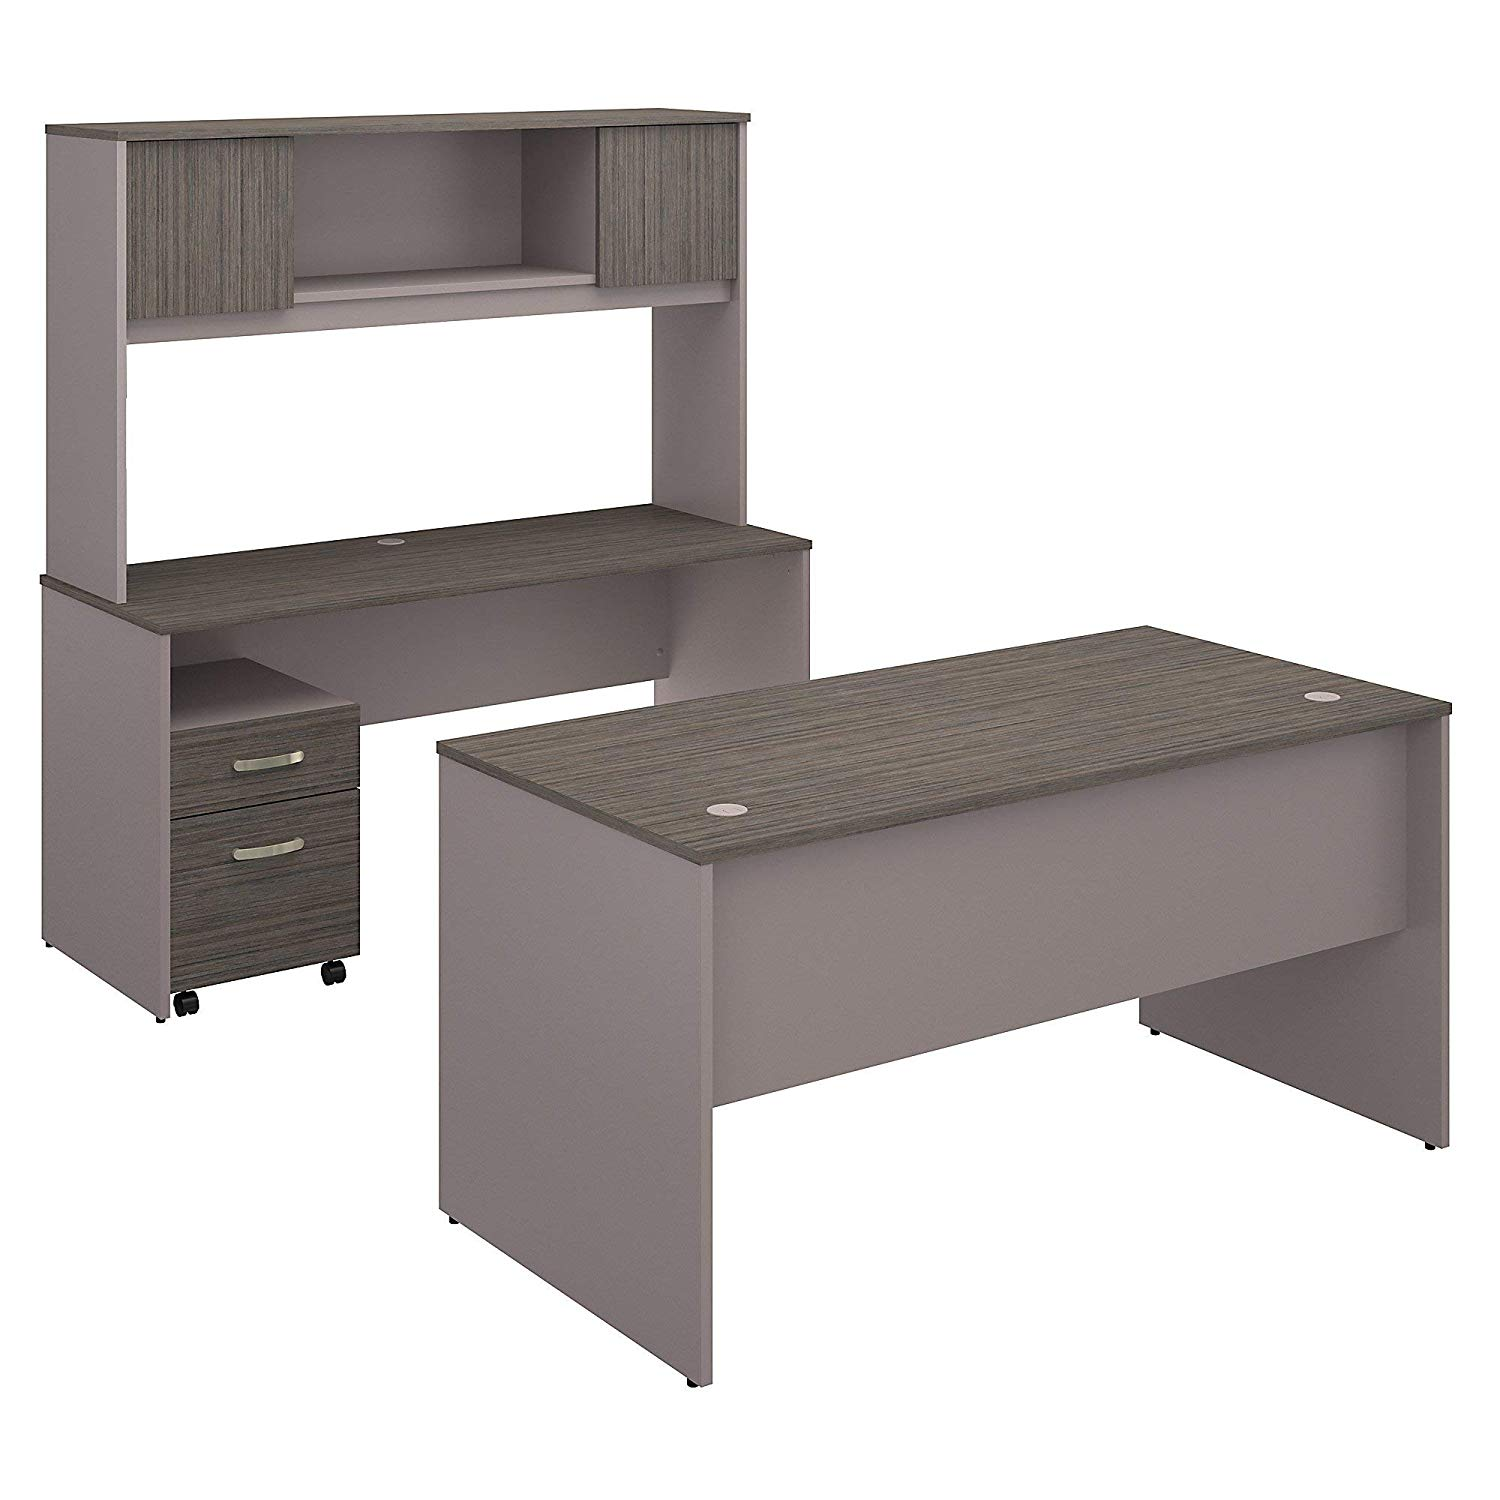 Bush Furniture Commerce 60W Office Desk with Credenza, Hutch and Mobile File Cabinet in Cocoa and Pewter